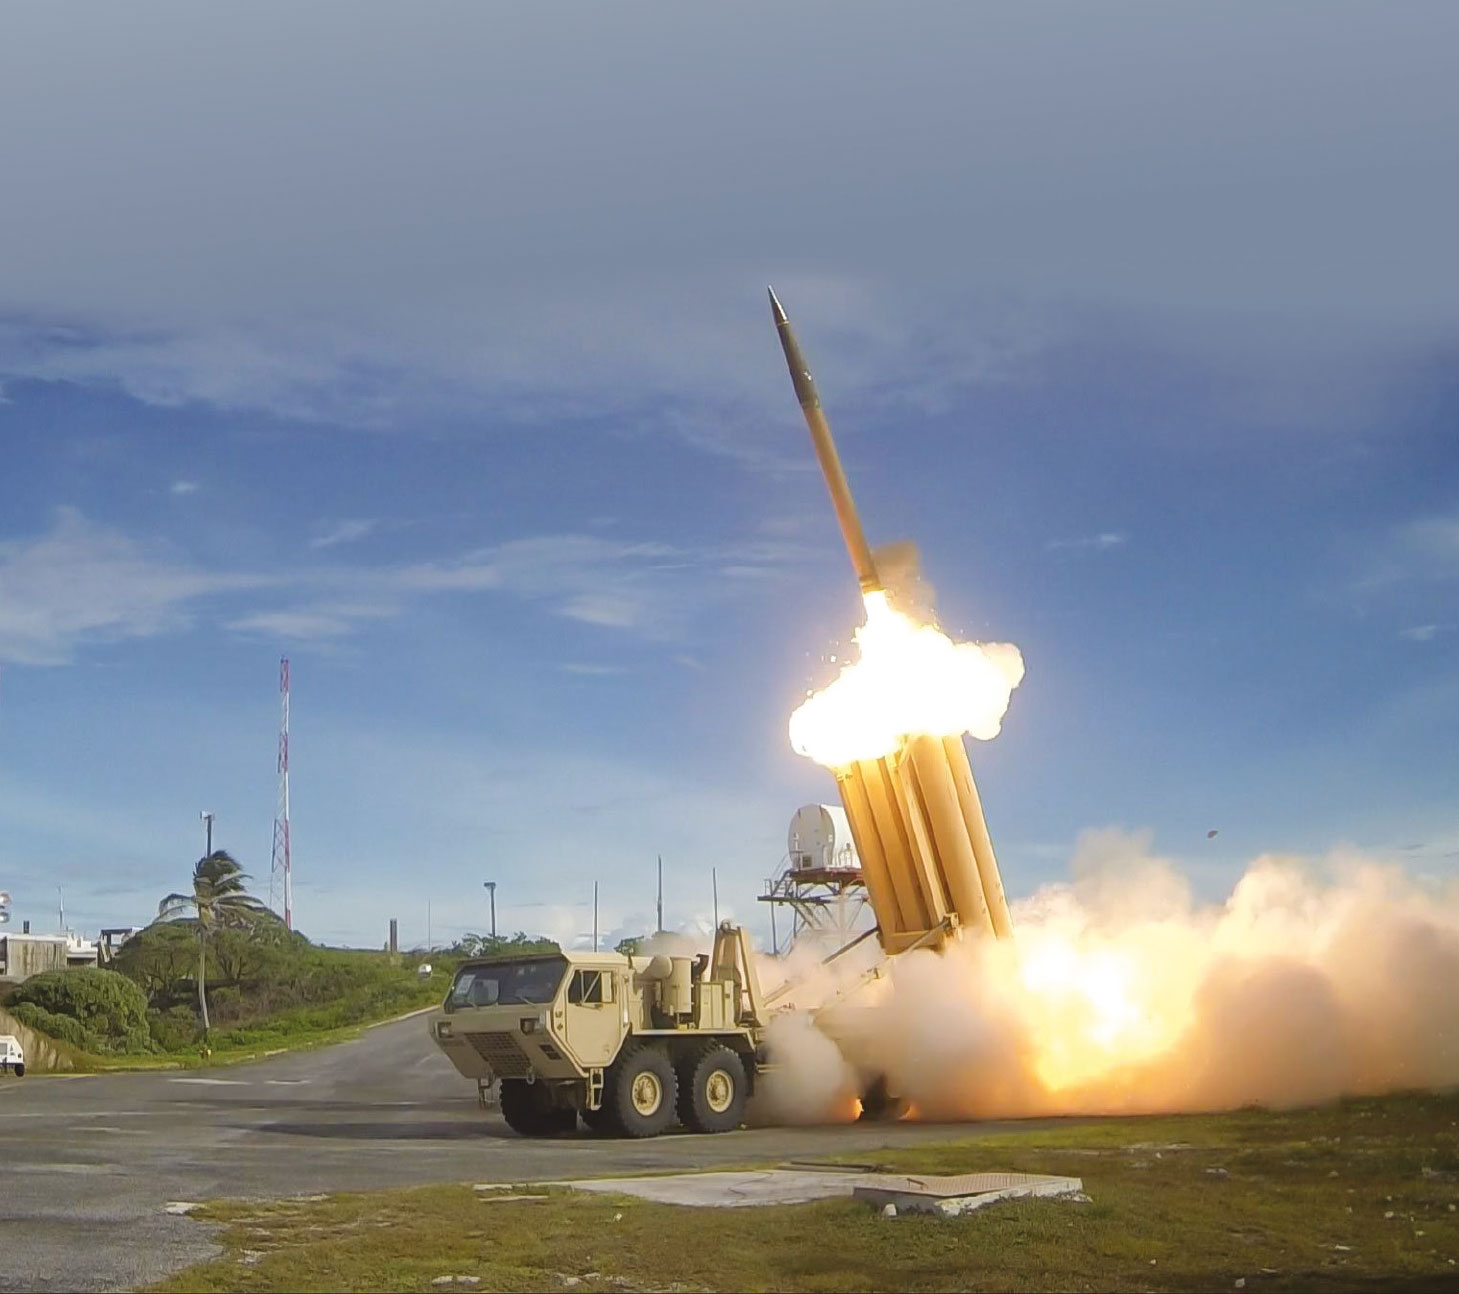 BAE Systems will Develop Next Generation IR Seeker for the THAAD Weapon System